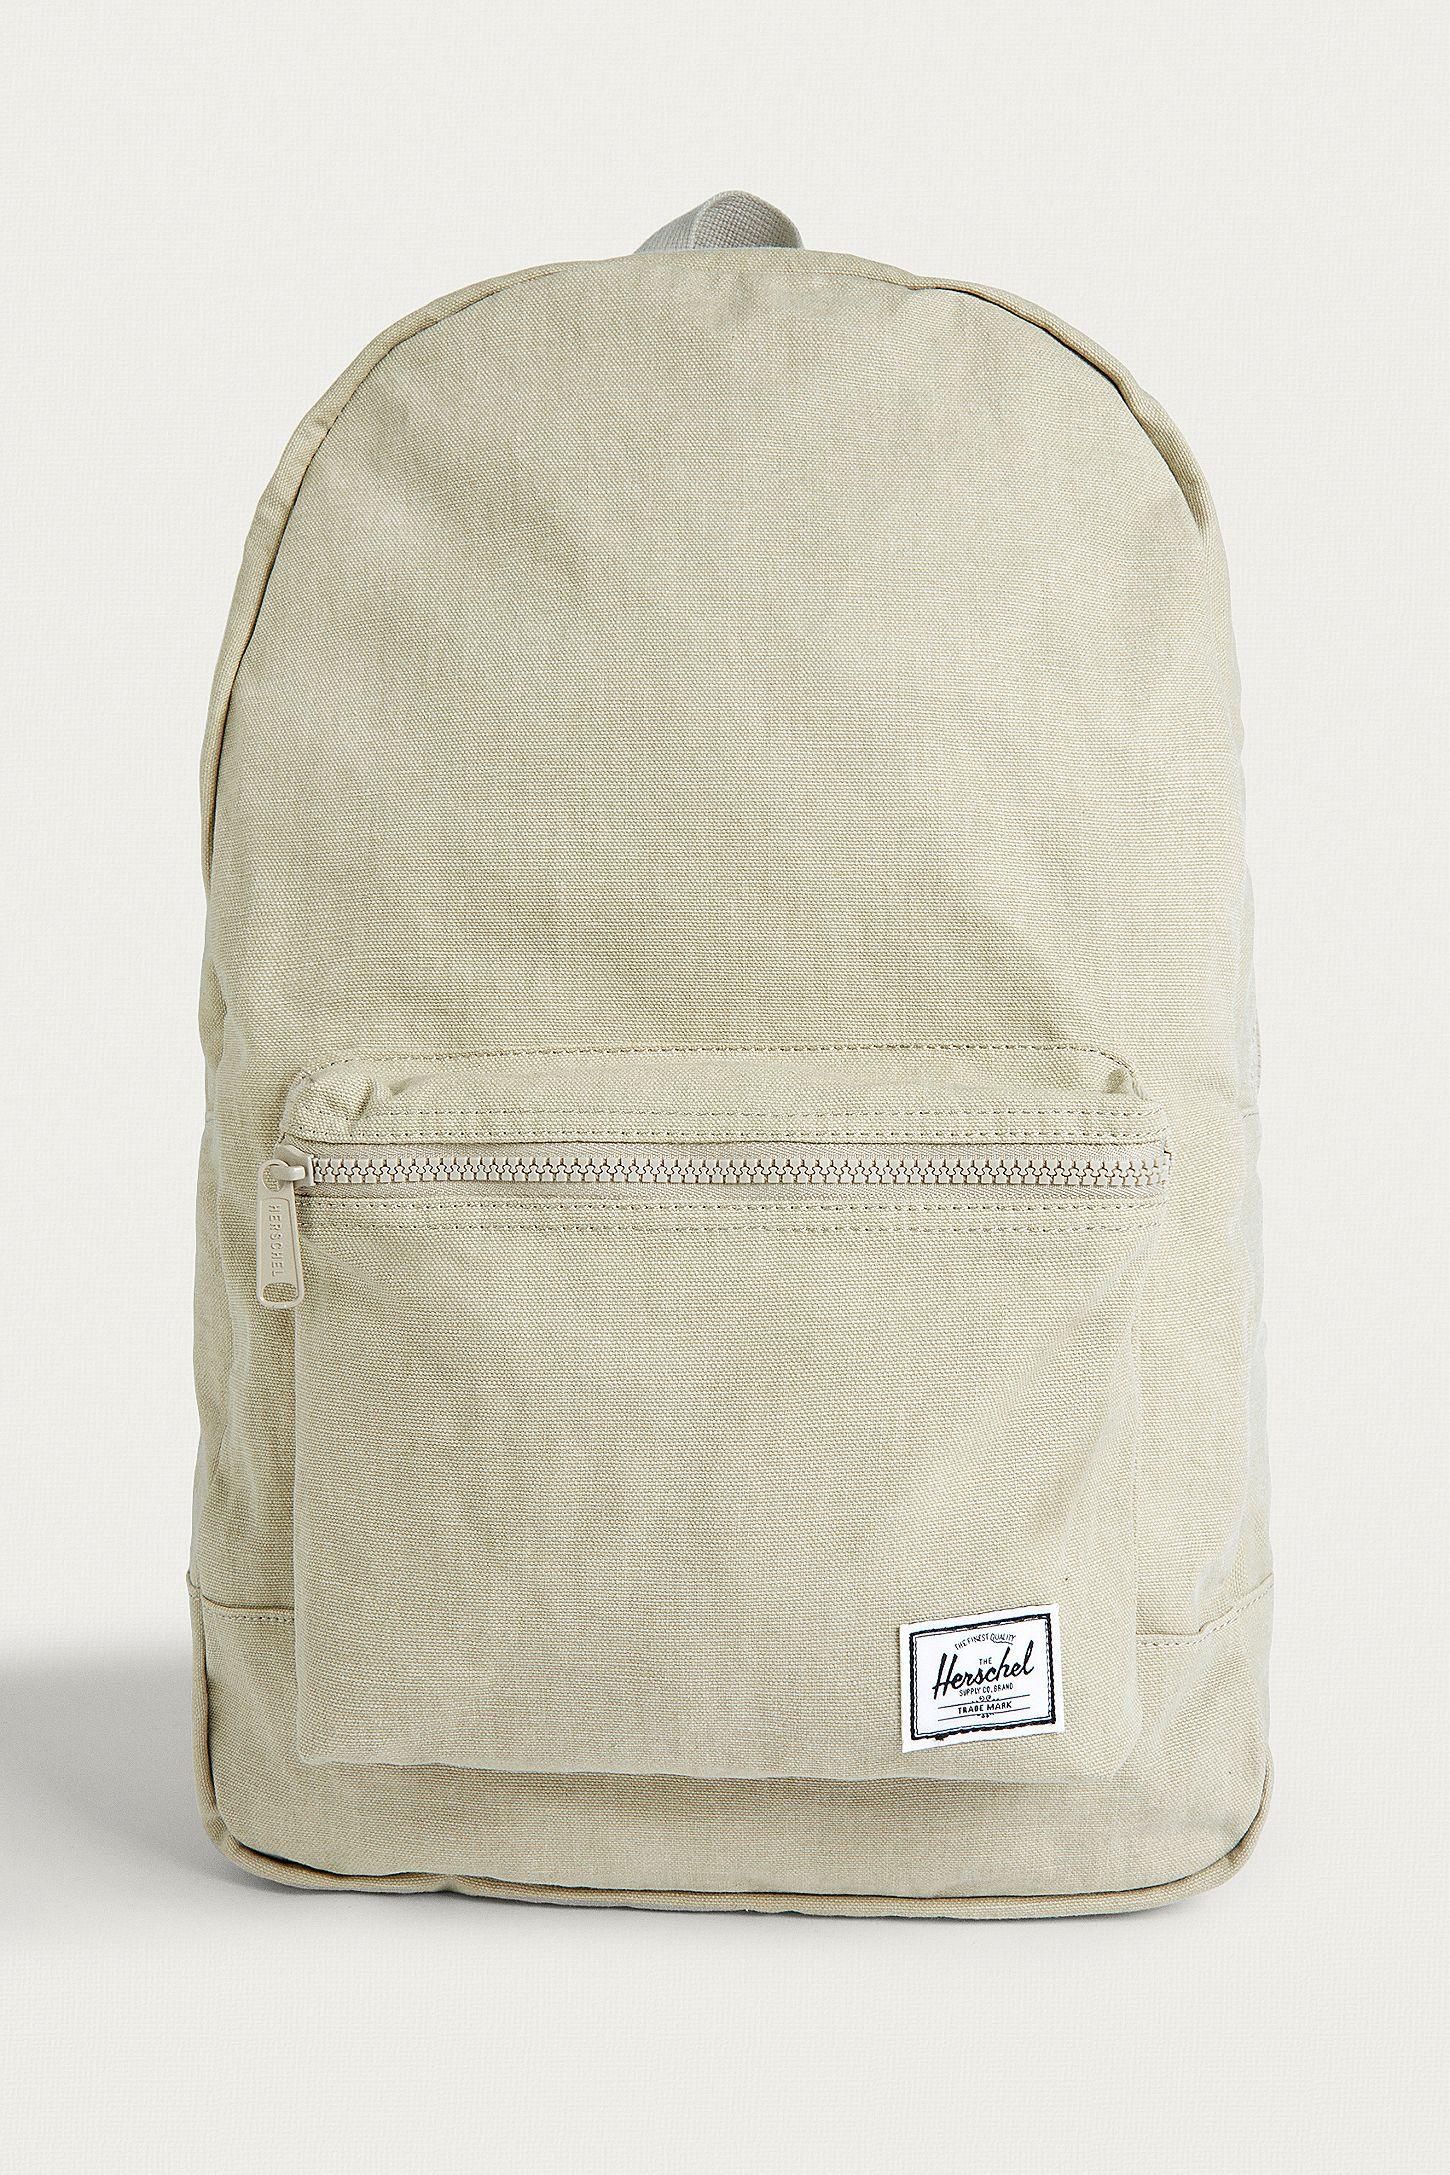 Herschel Supply Co. Cotton Casuals Eucalyptus Daypack Backpack ... 497b6db56a